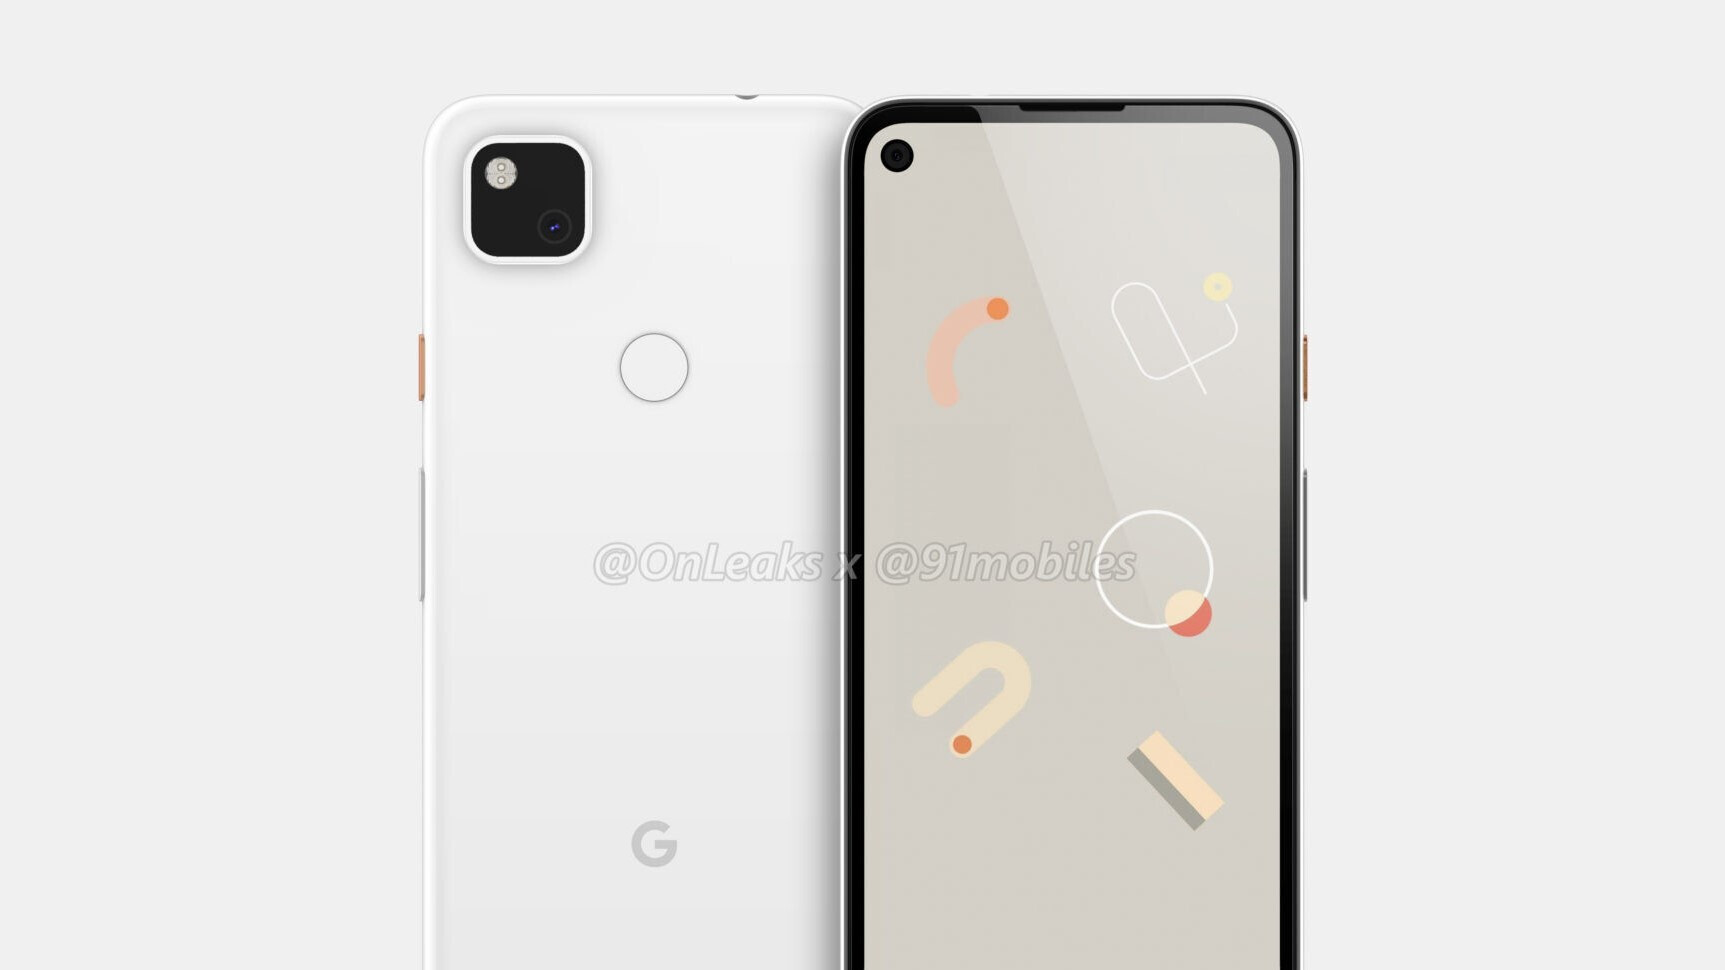 Will Google Pixel 4 Be 5 G